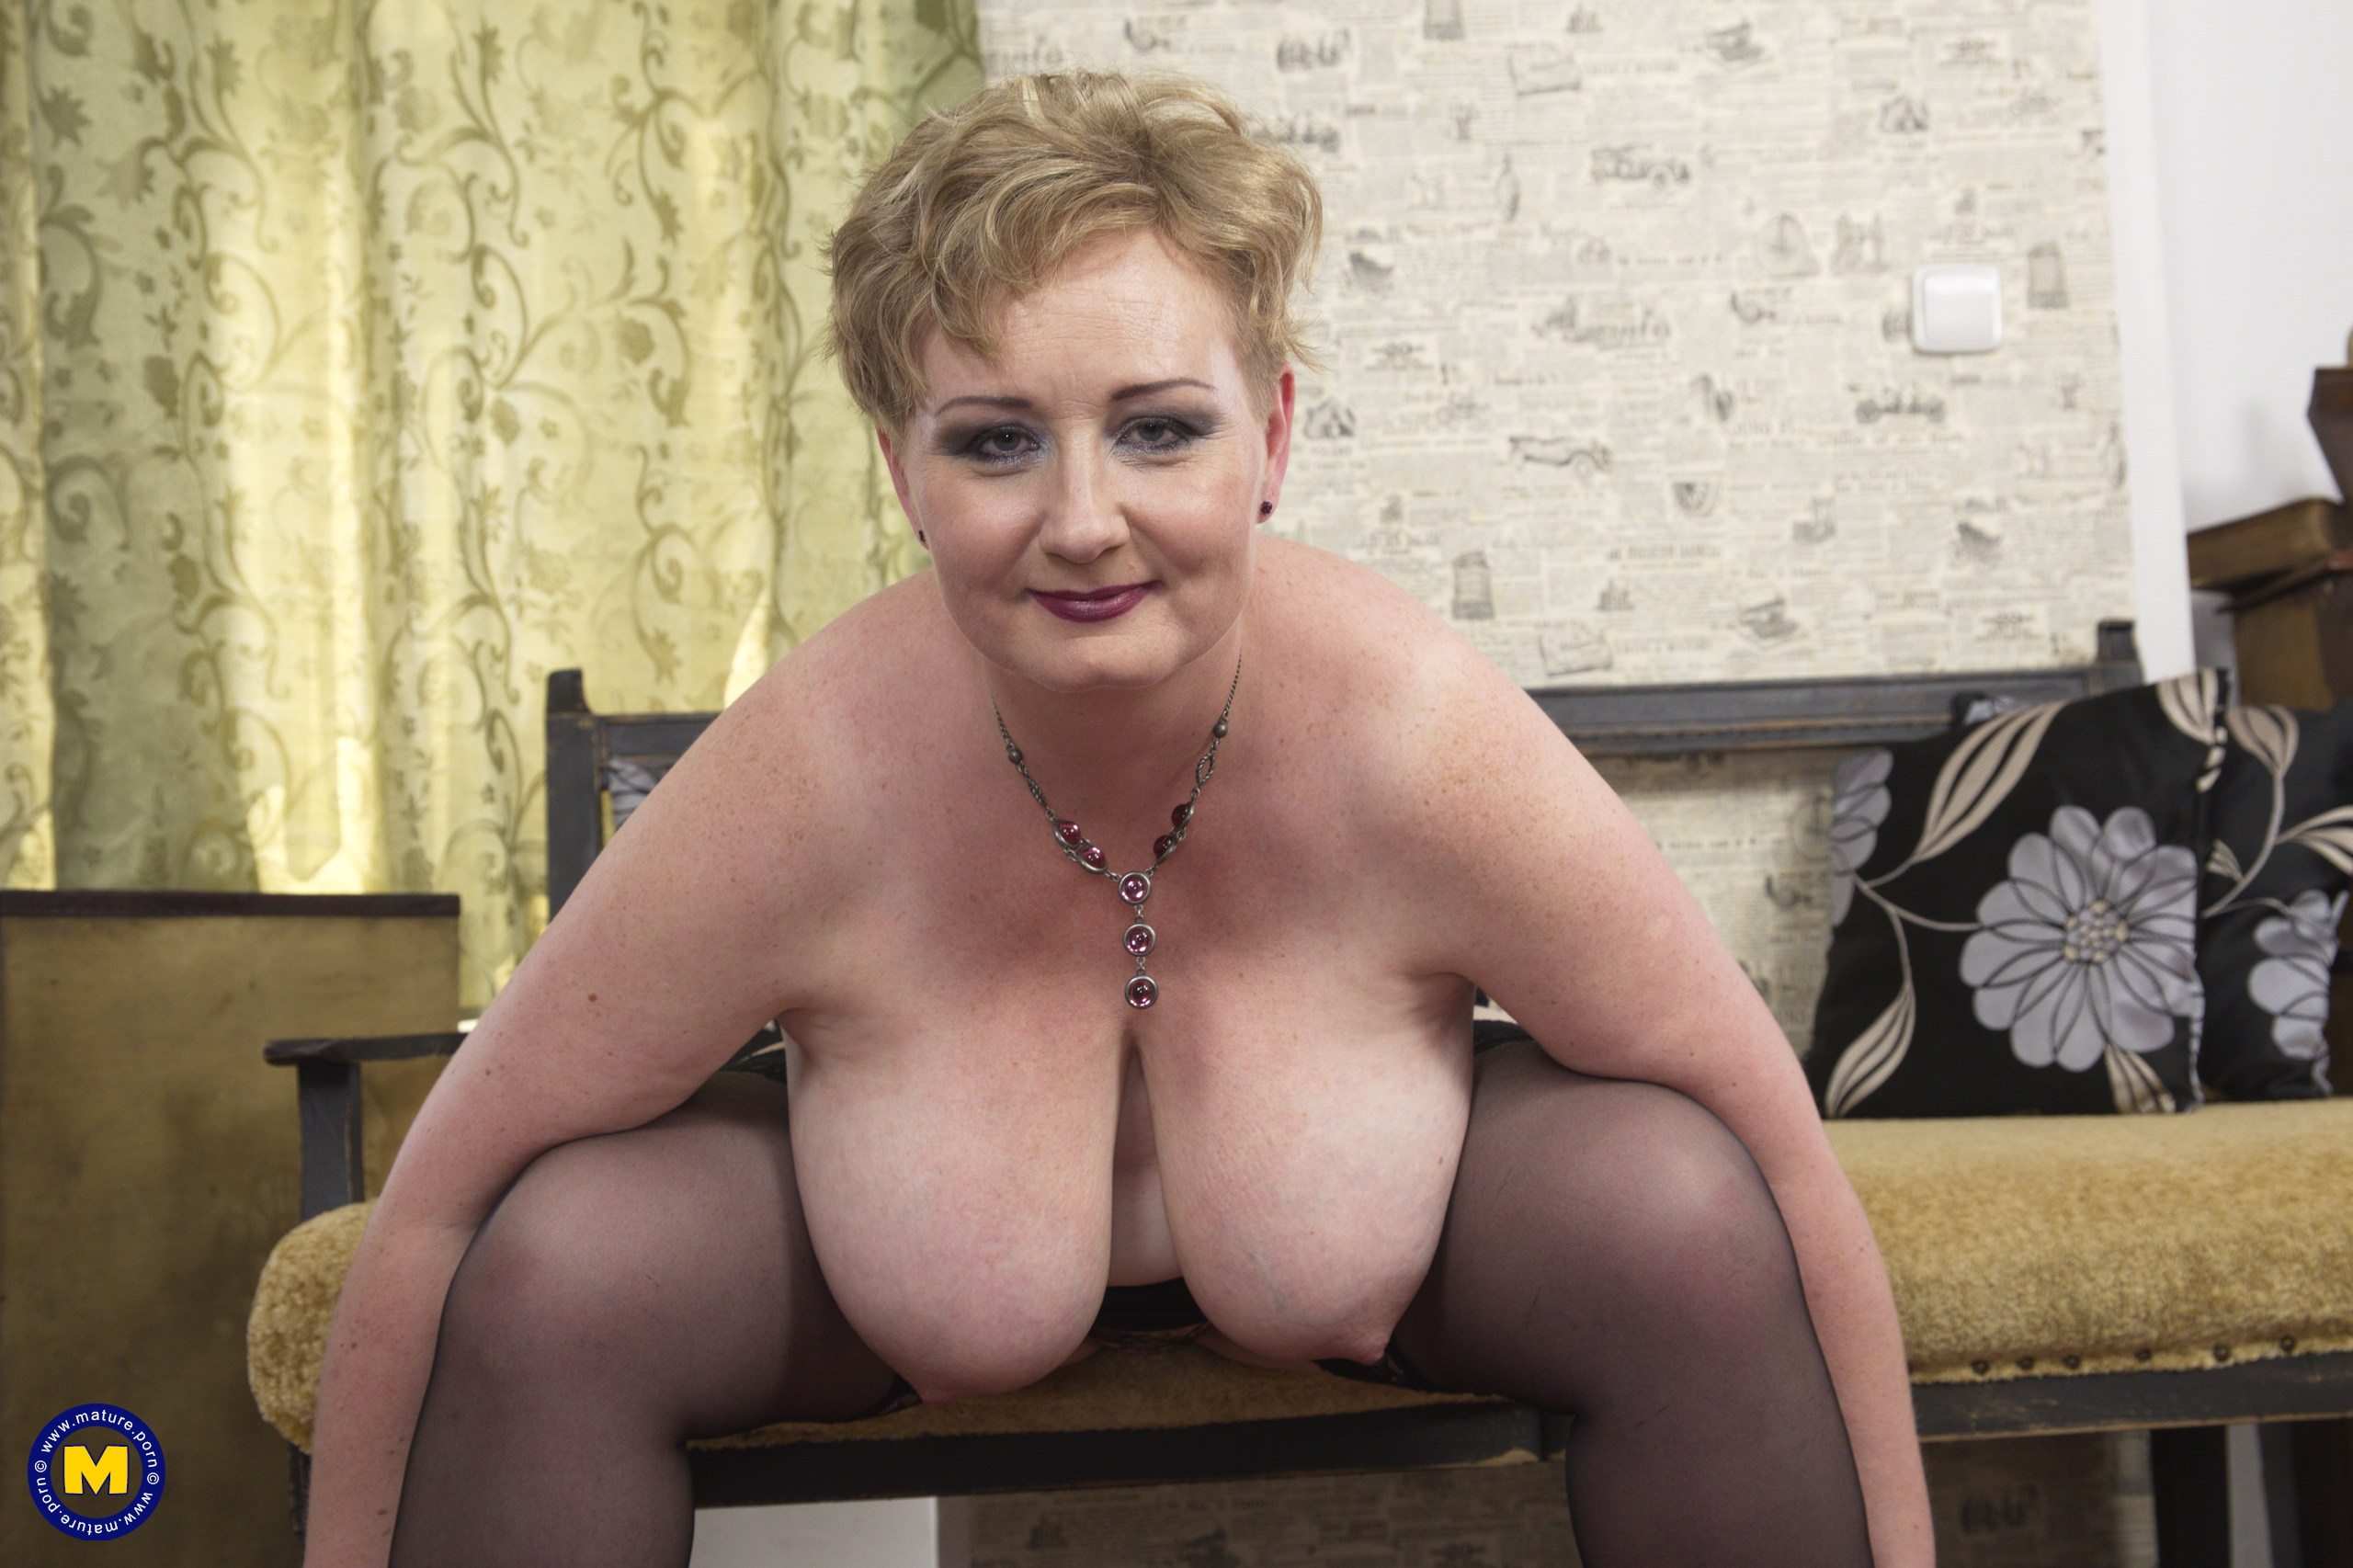 Round mature doll showing off her gigantic knockers